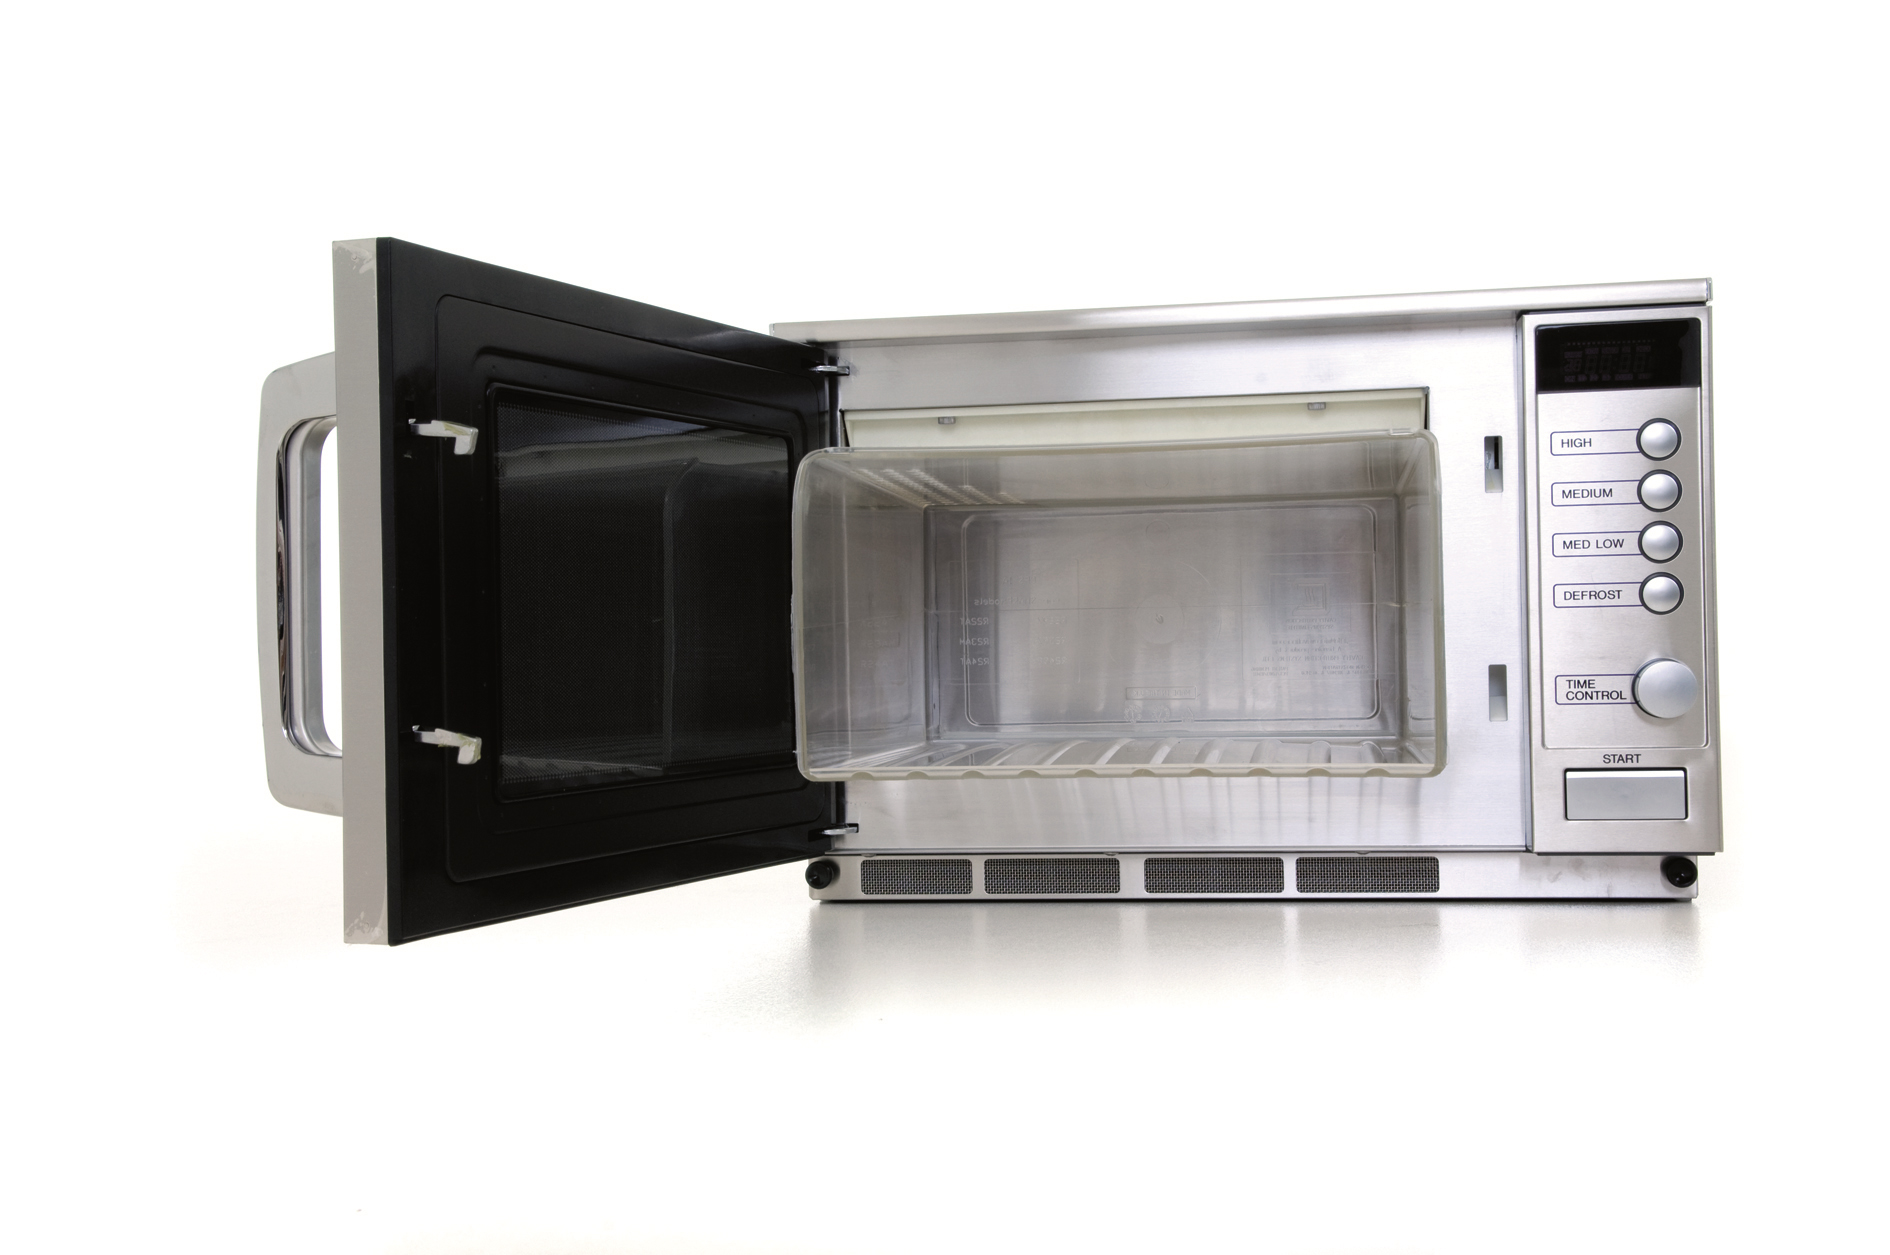 Sharp R 23am 1900w Commercial Microwave With Cavity Liner